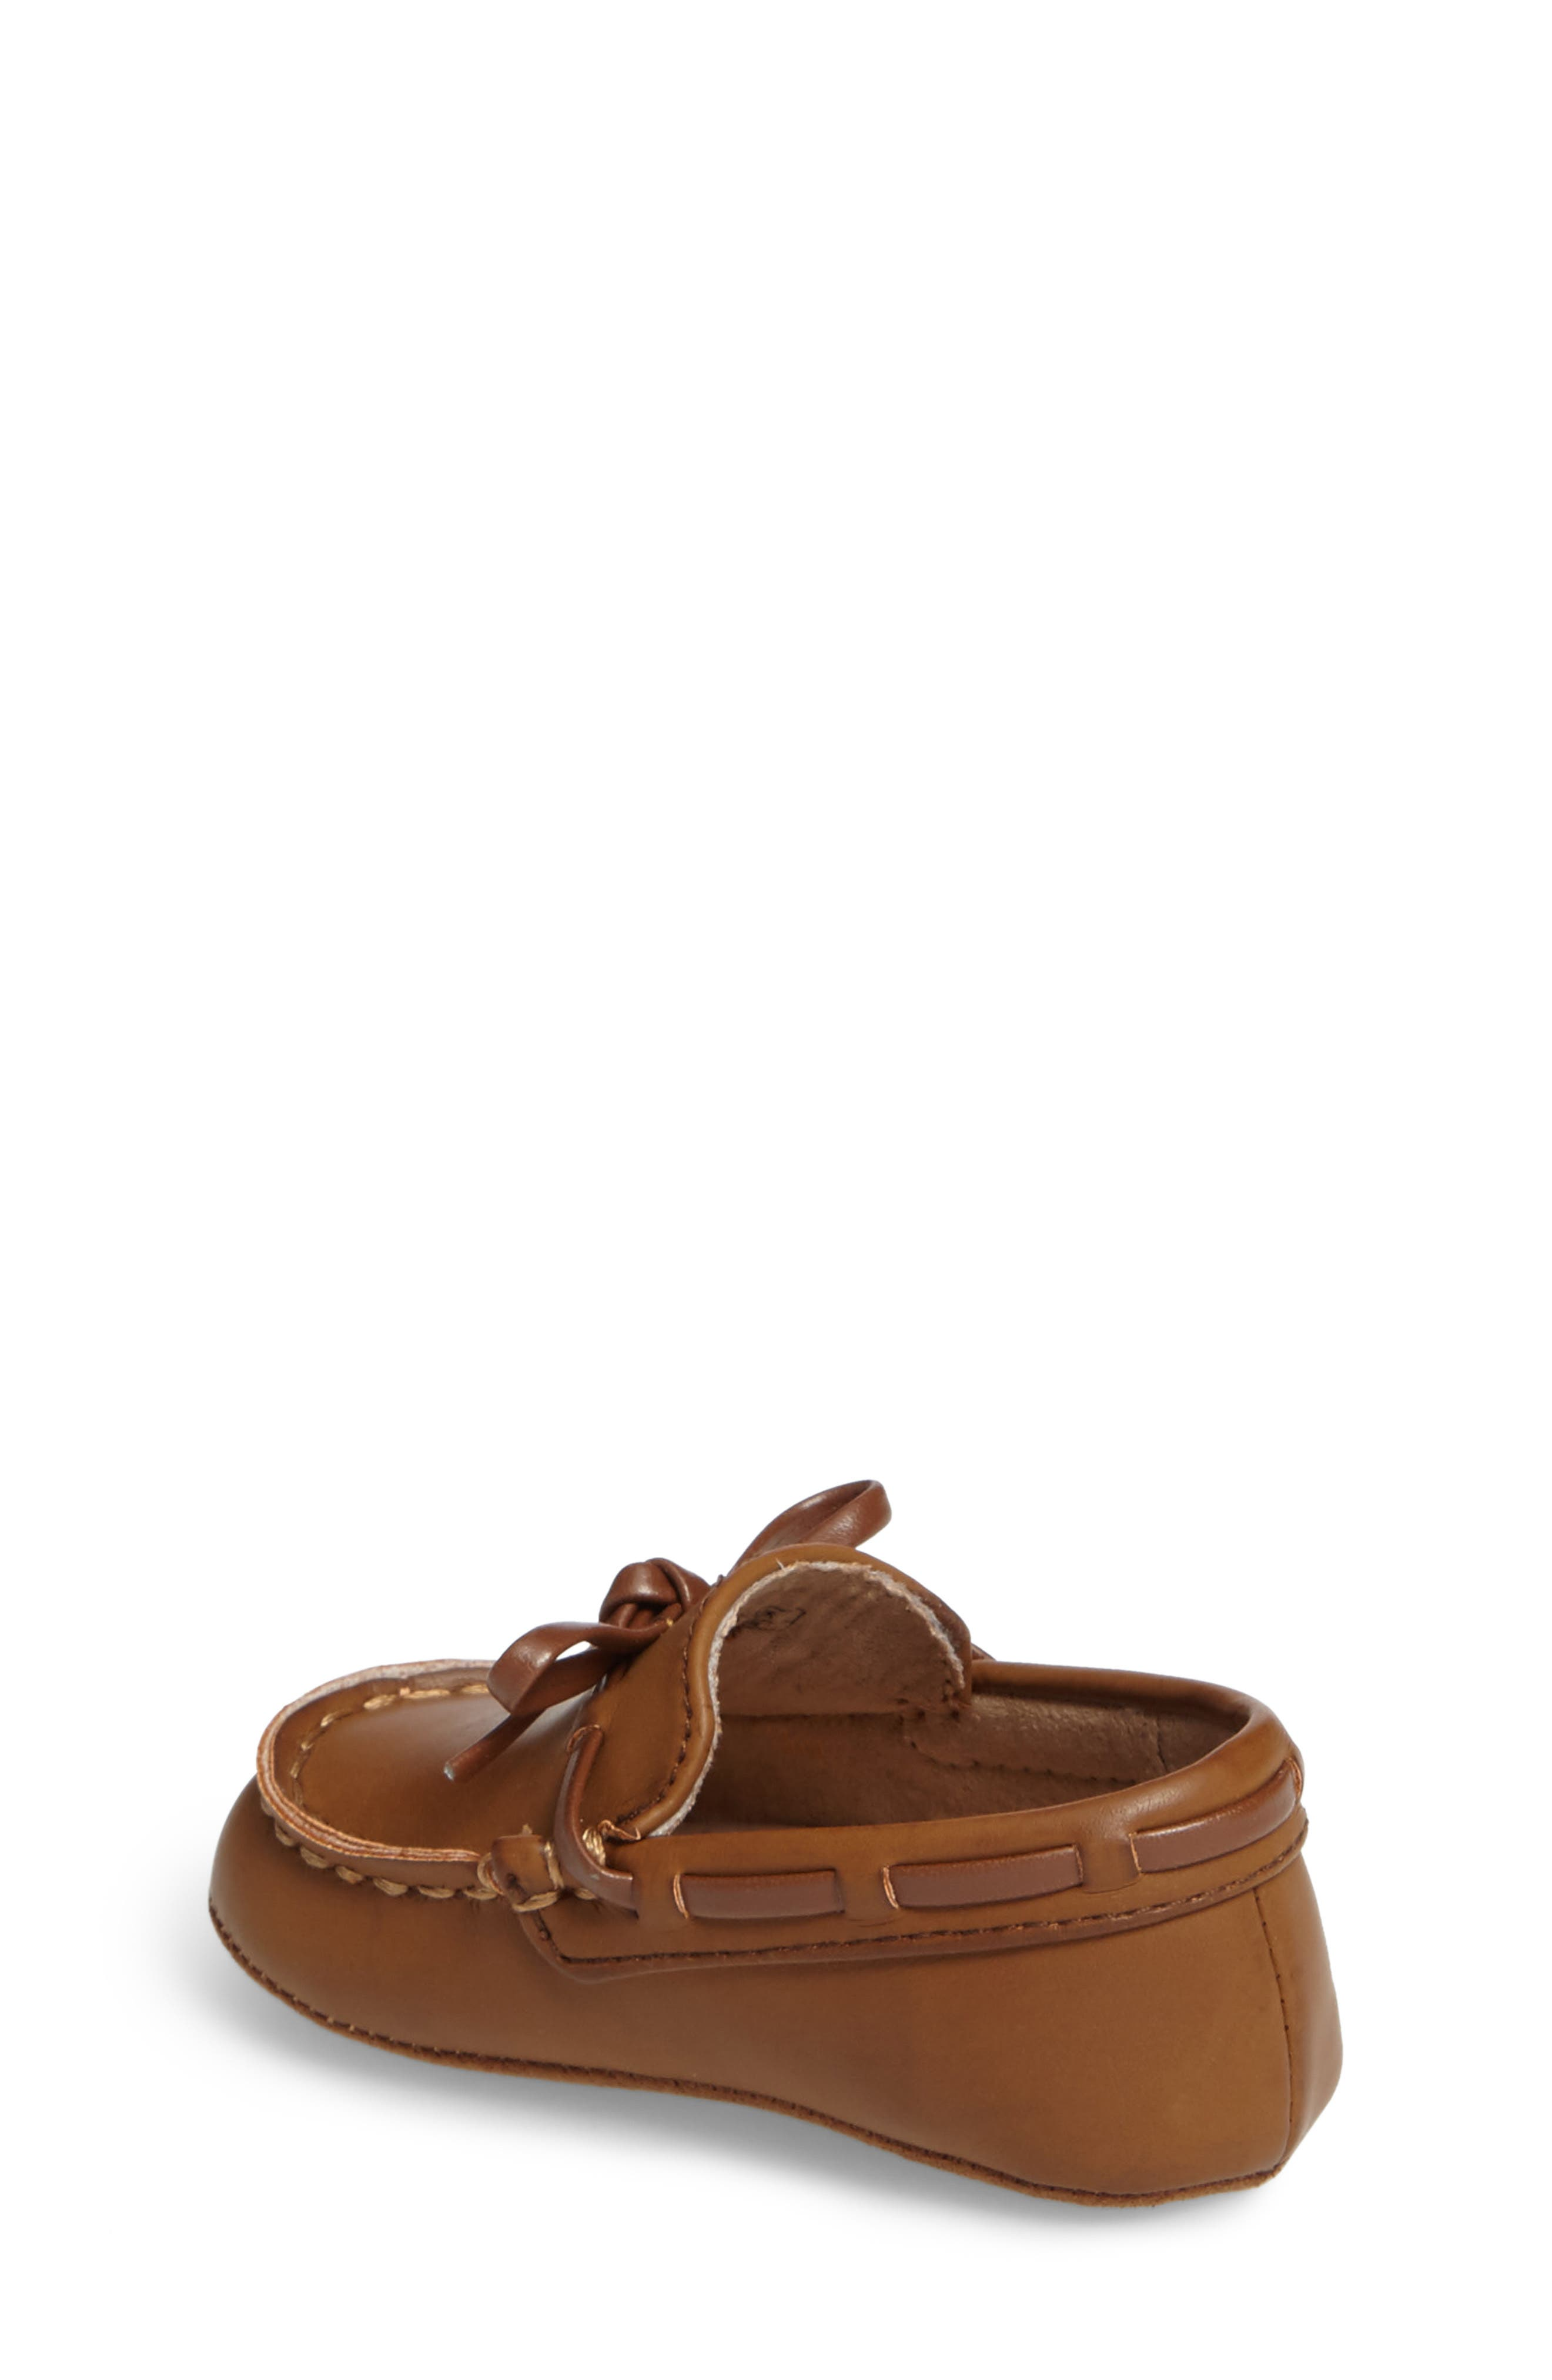 Baby Boat Shoe,                             Alternate thumbnail 2, color,                             Caramel